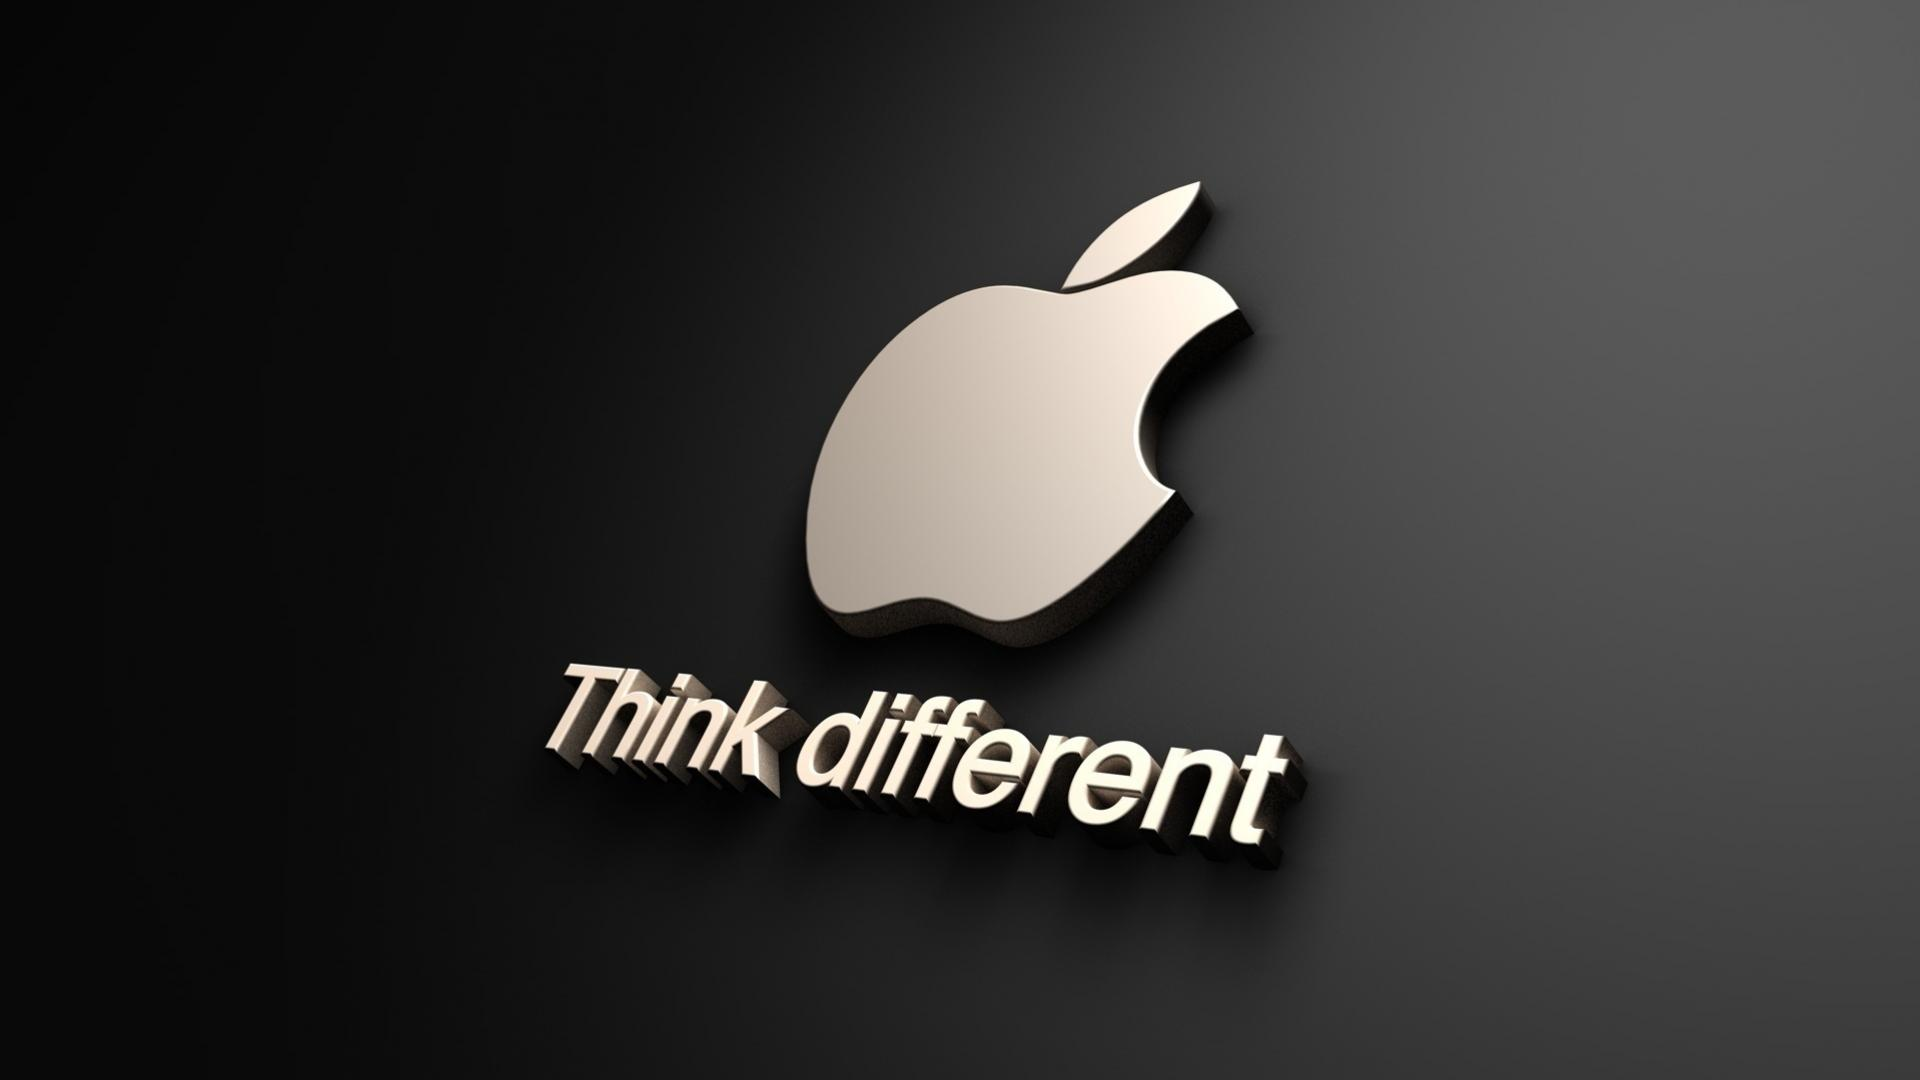 apple-background-hd-22